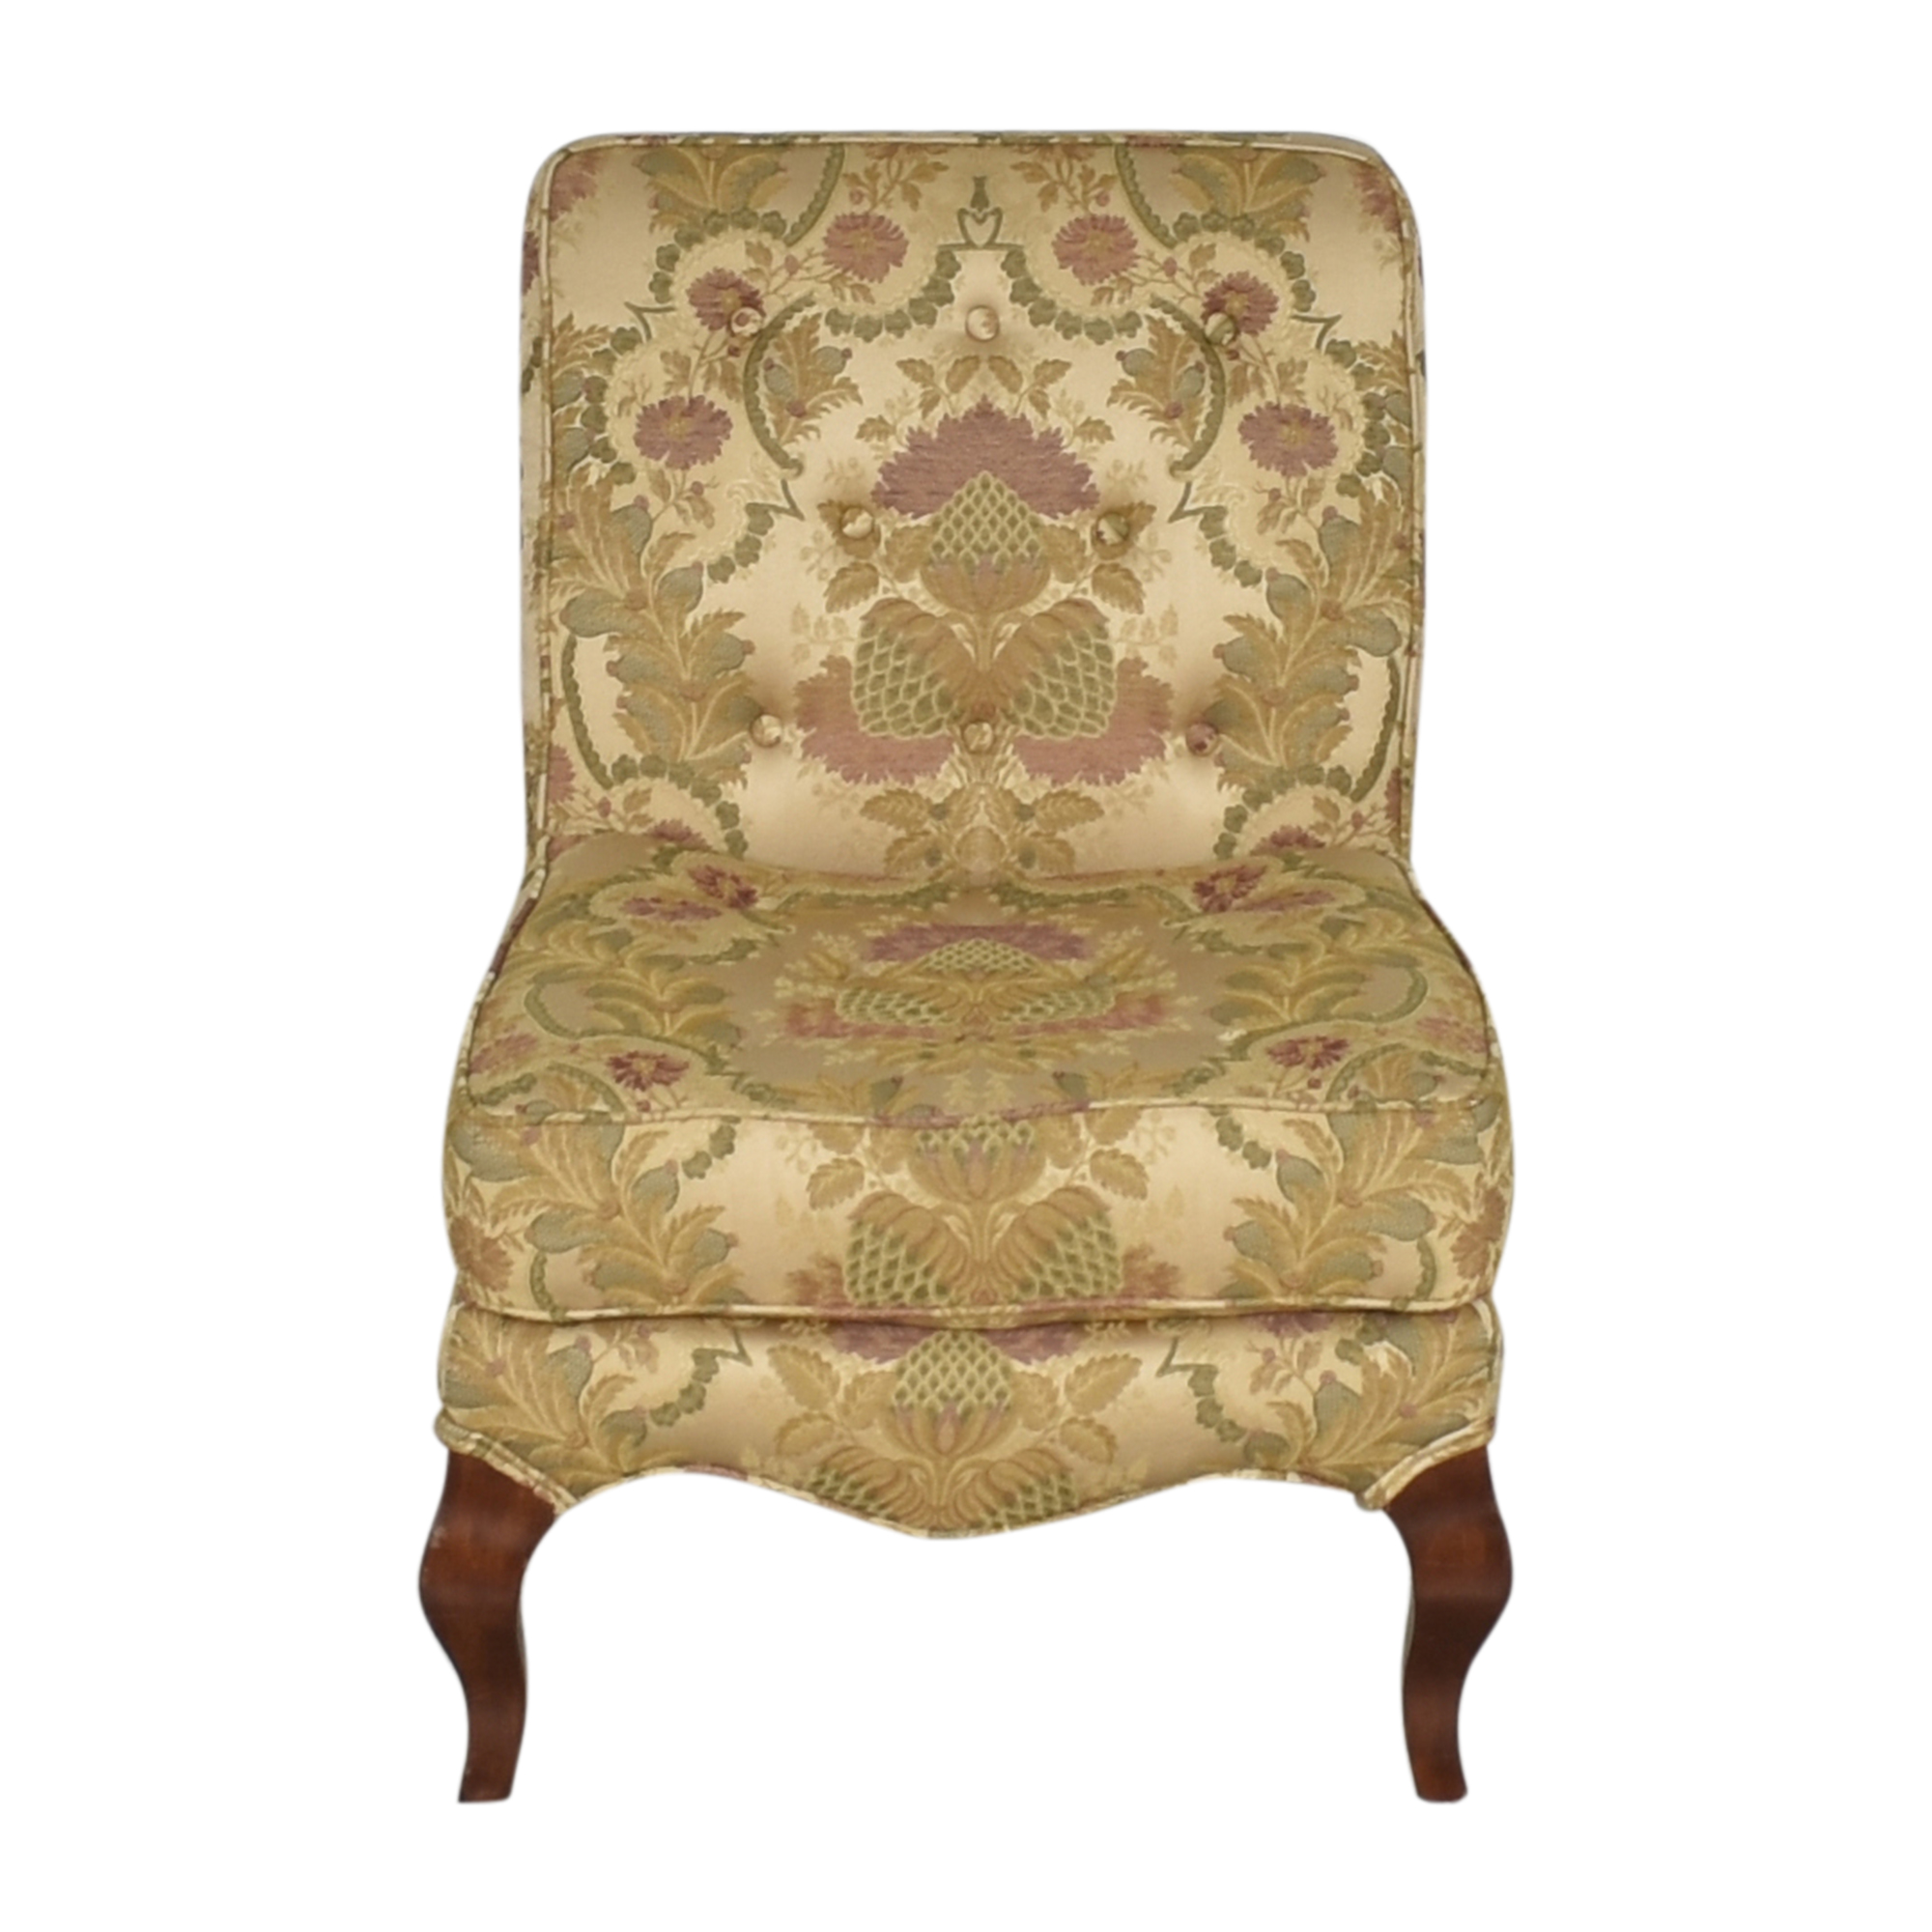 Domain Home Domain Home Slipper Chair used